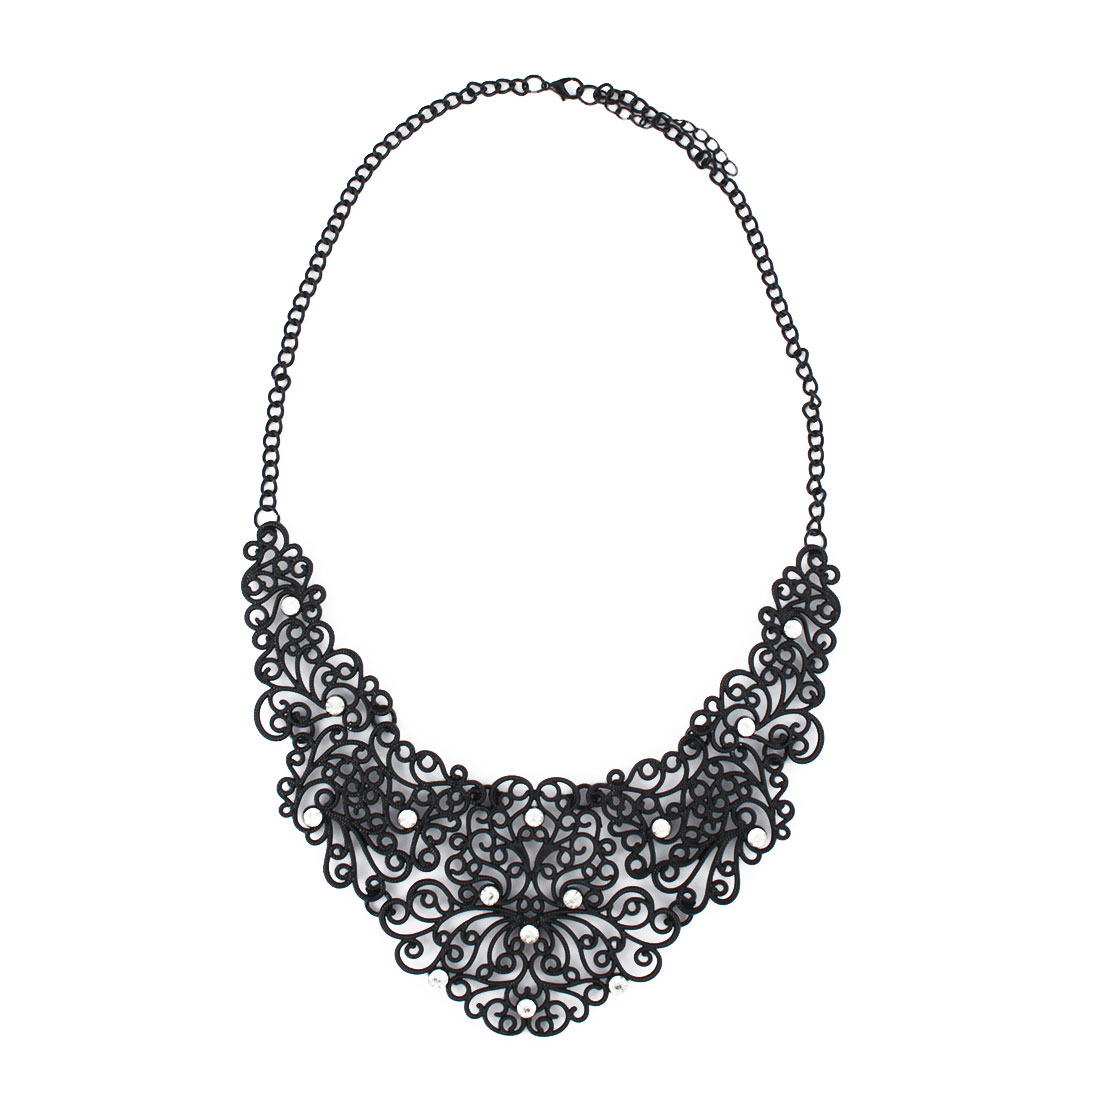 Women Metal Hollow Out Design Pendant Bib Collar Charming Choker Necklace Black